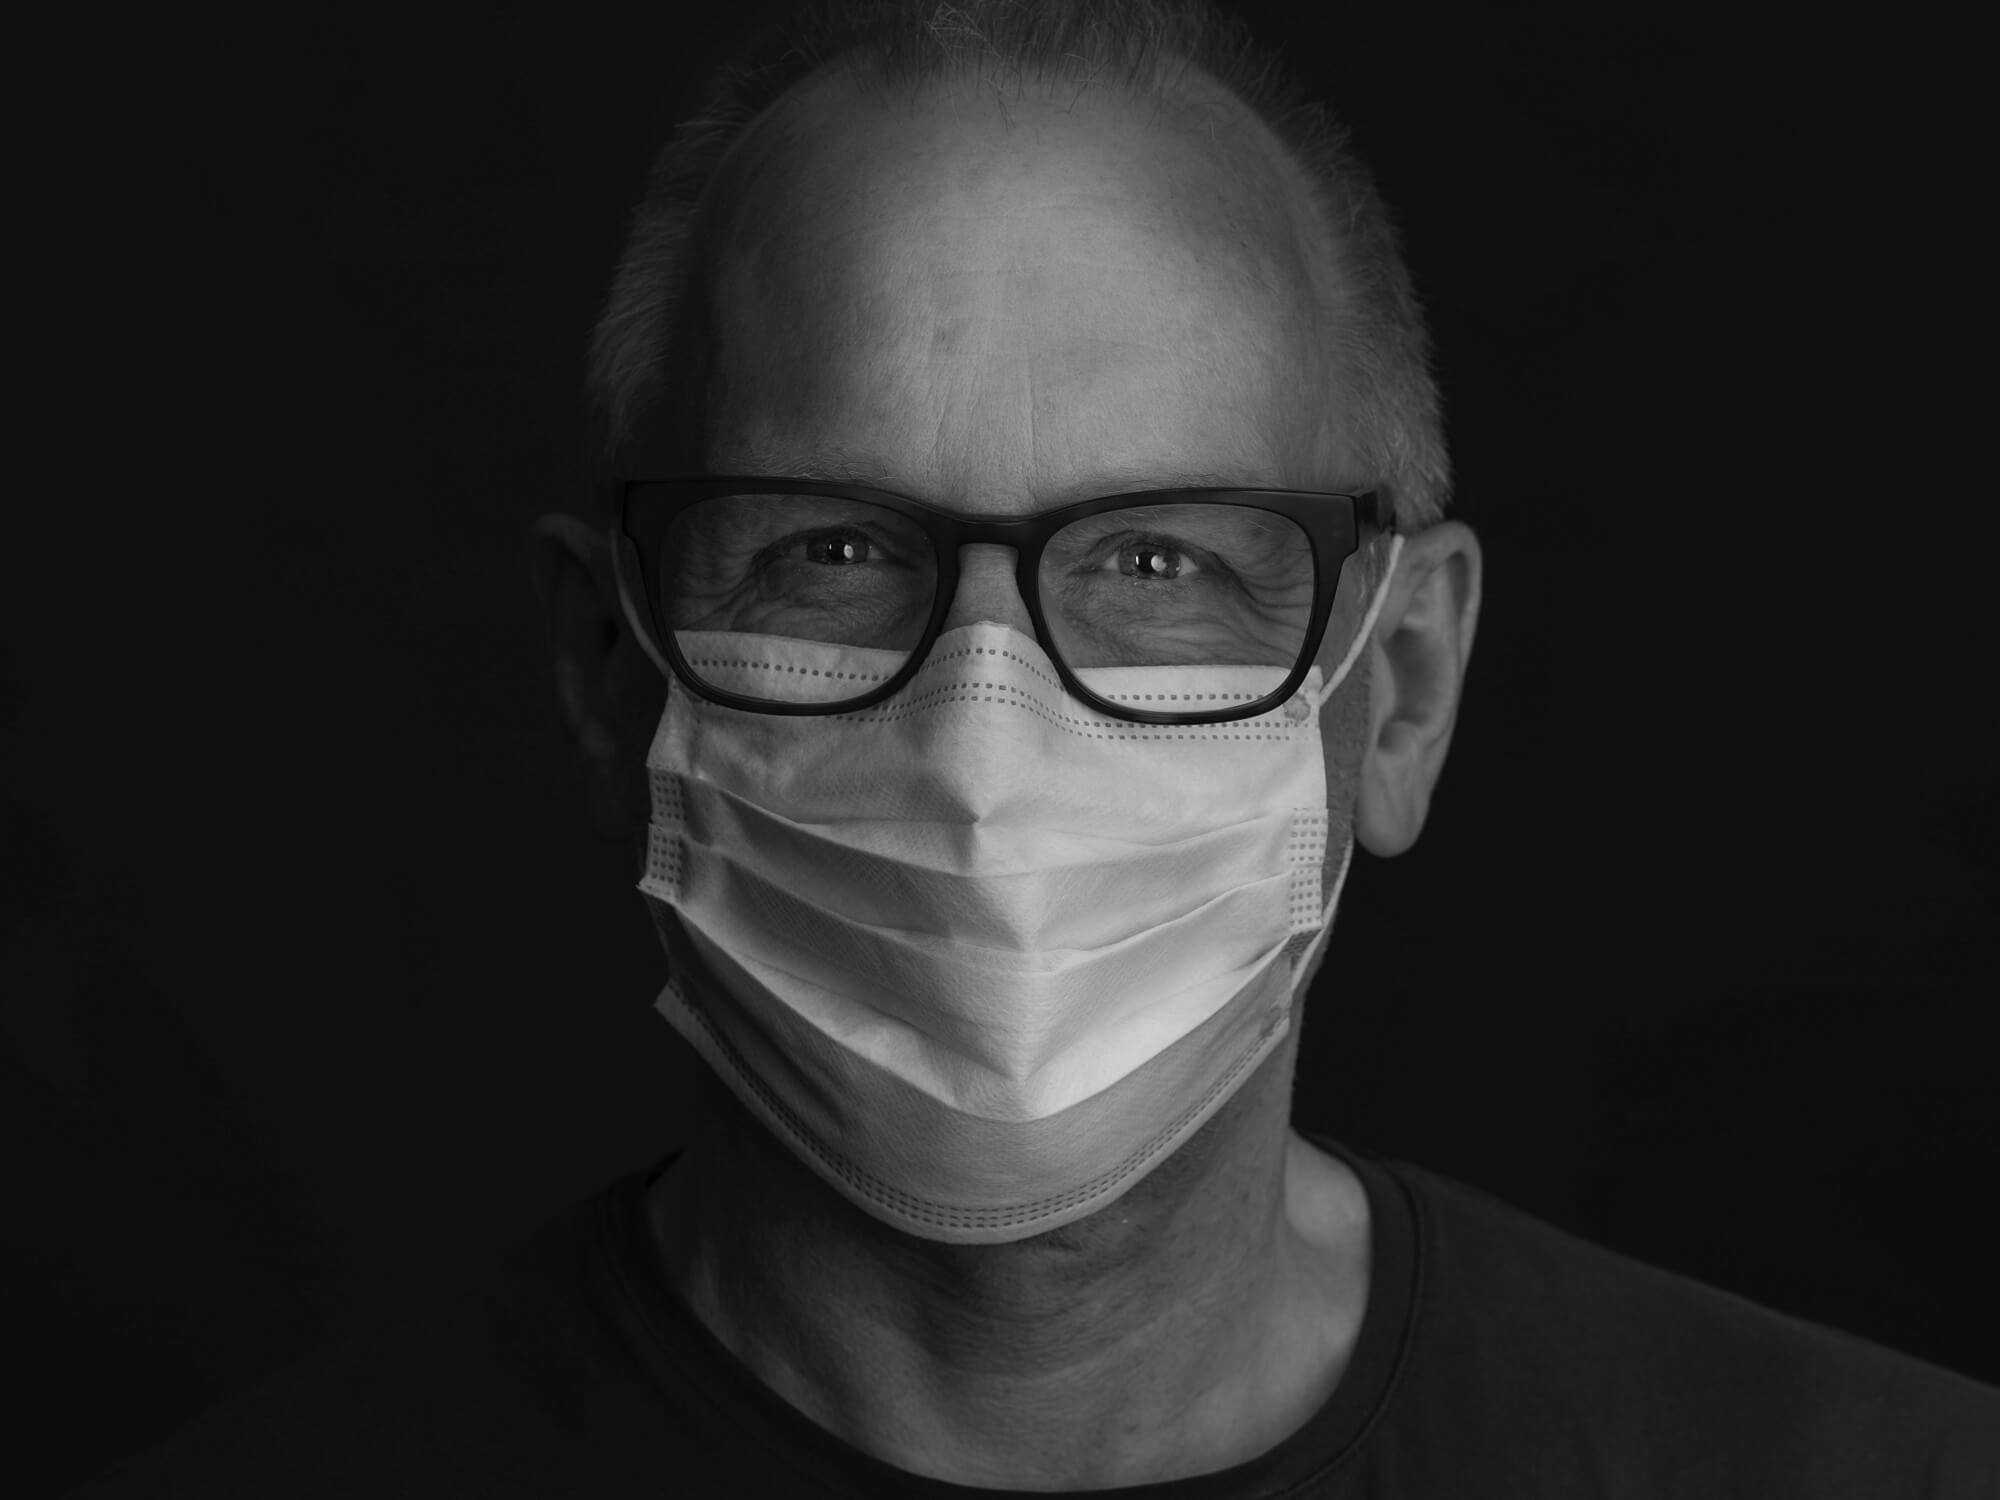 Black and white image of a man with glasses wearing a facemask